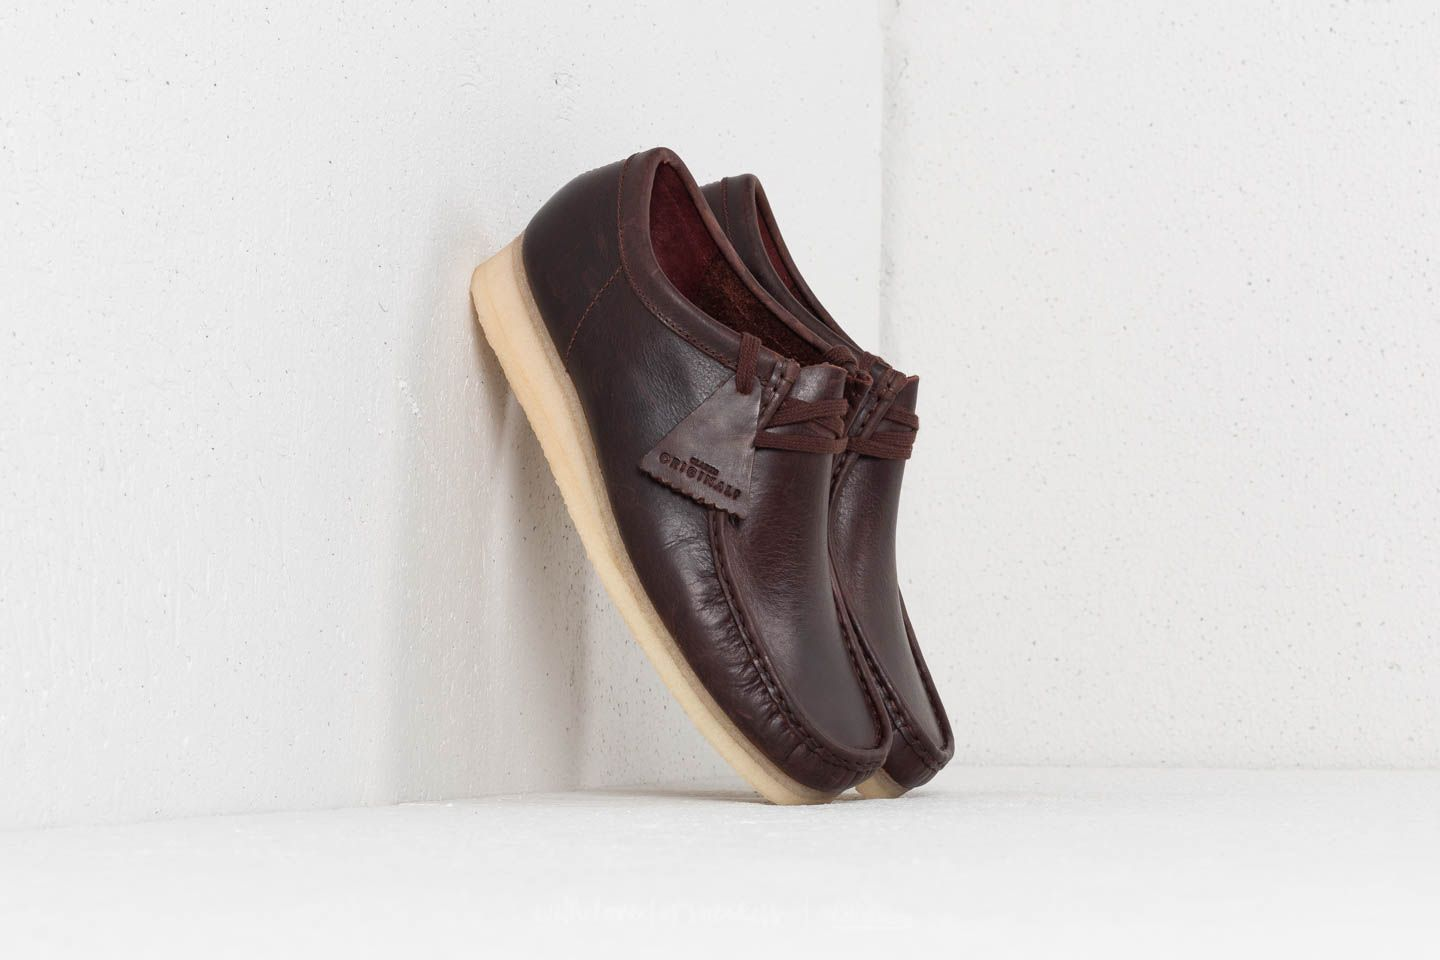 Clarks Originals Wallabee Chestnut Leather